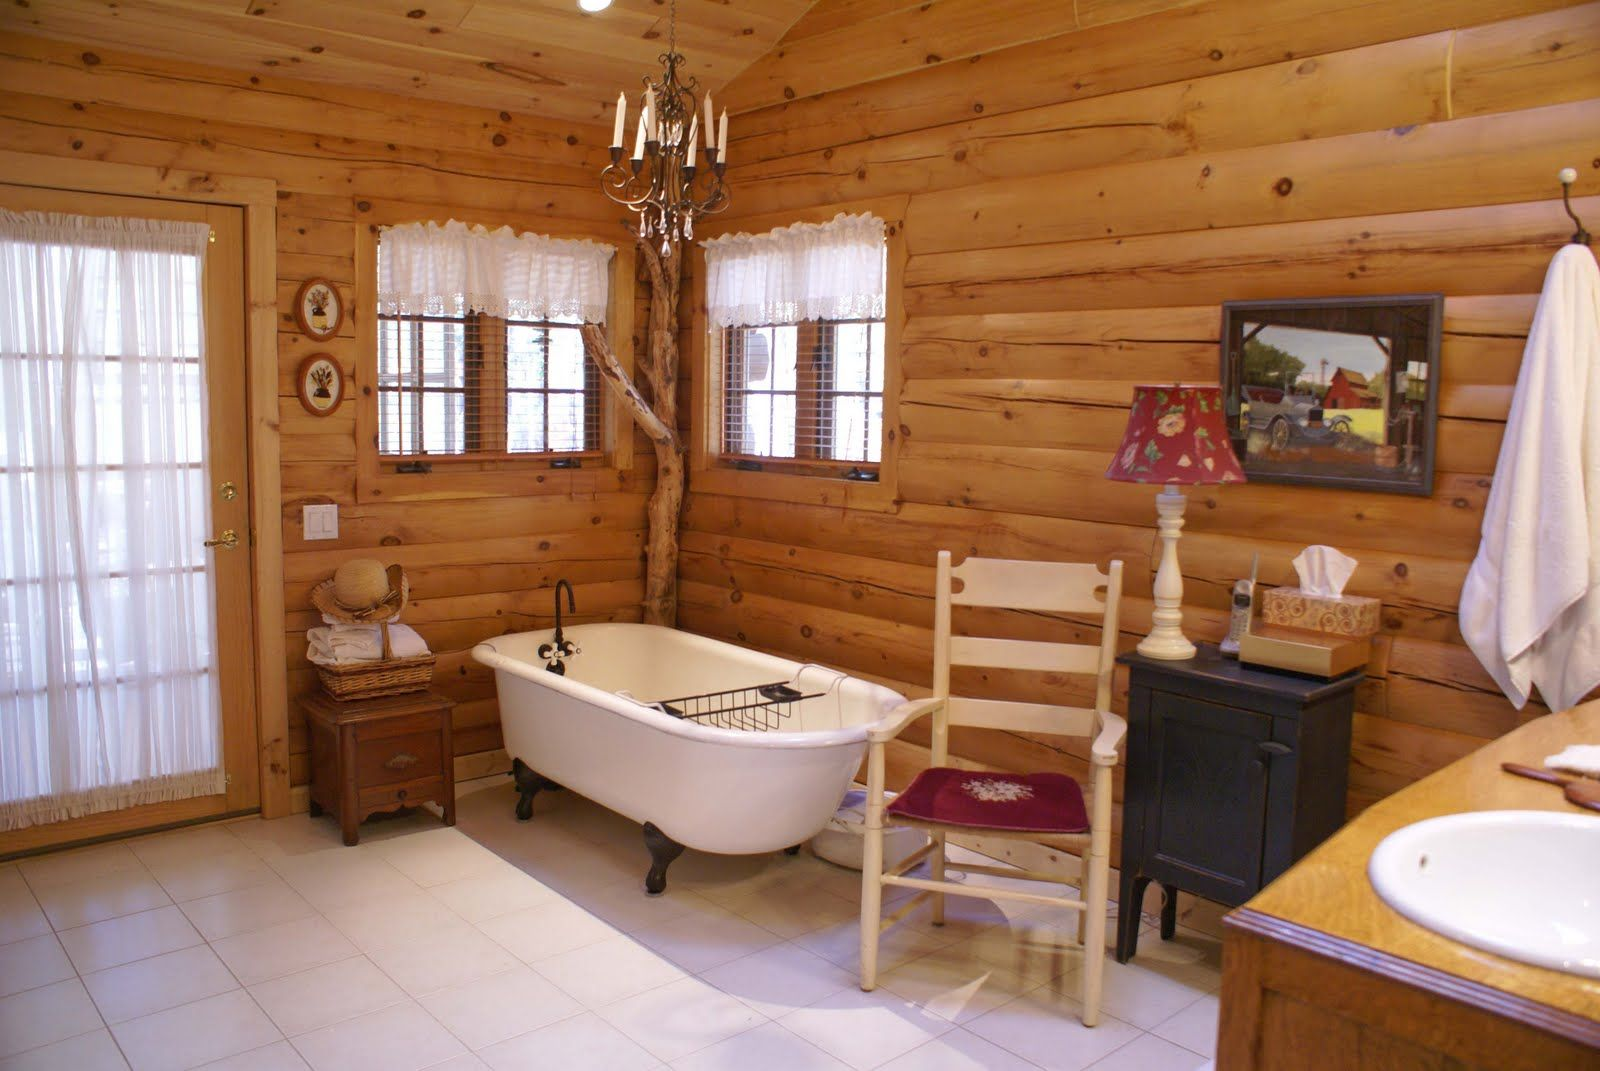 explore log cabin siding log cabin homes and more